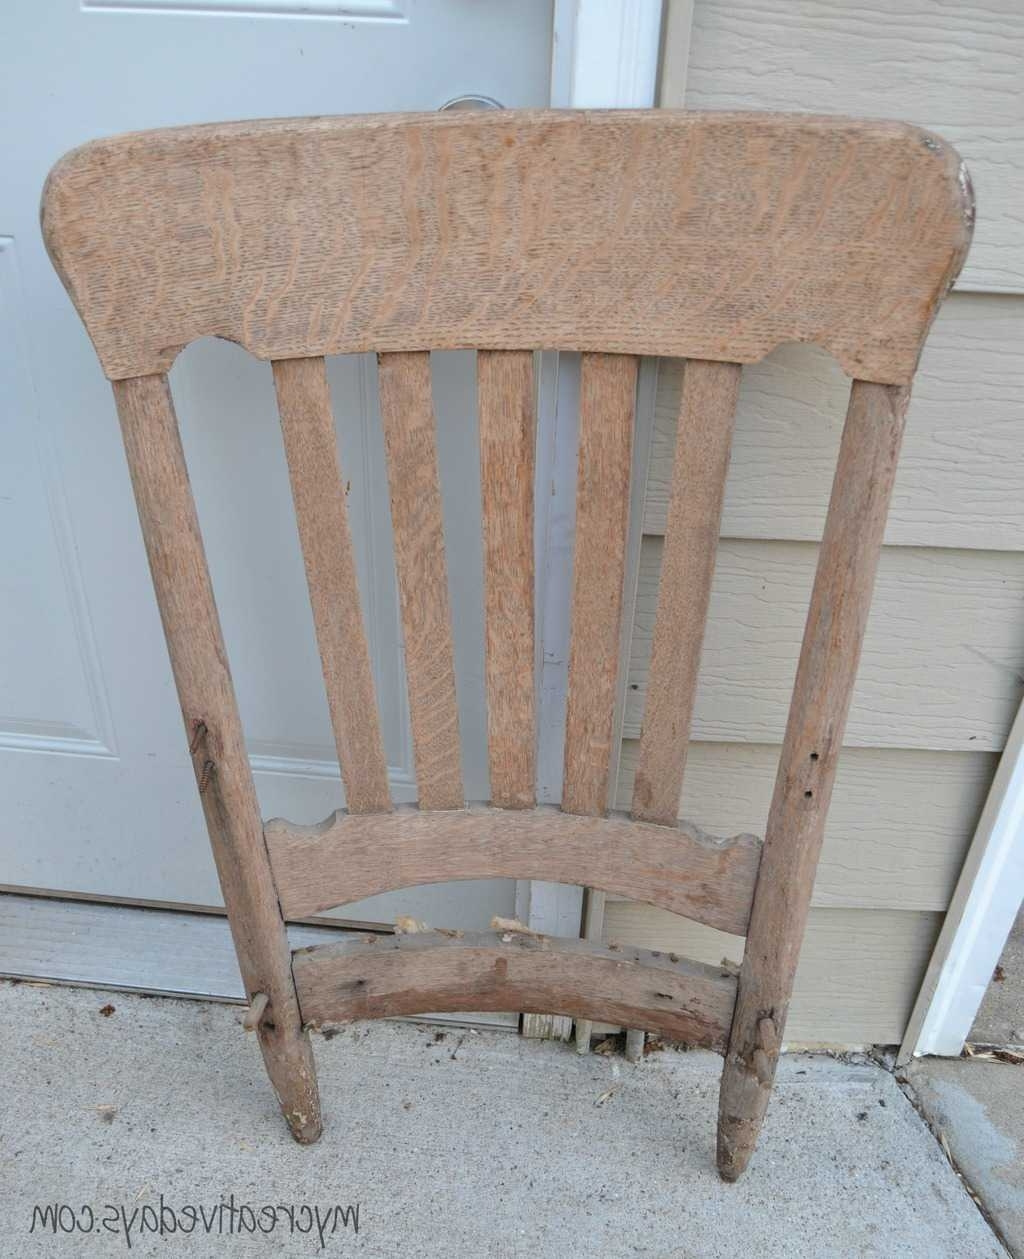 Upcycled Rocking Chairs With Widely Used Diy Rocking Chair Upcycle Tutorial – My Creative Days (View 15 of 15)